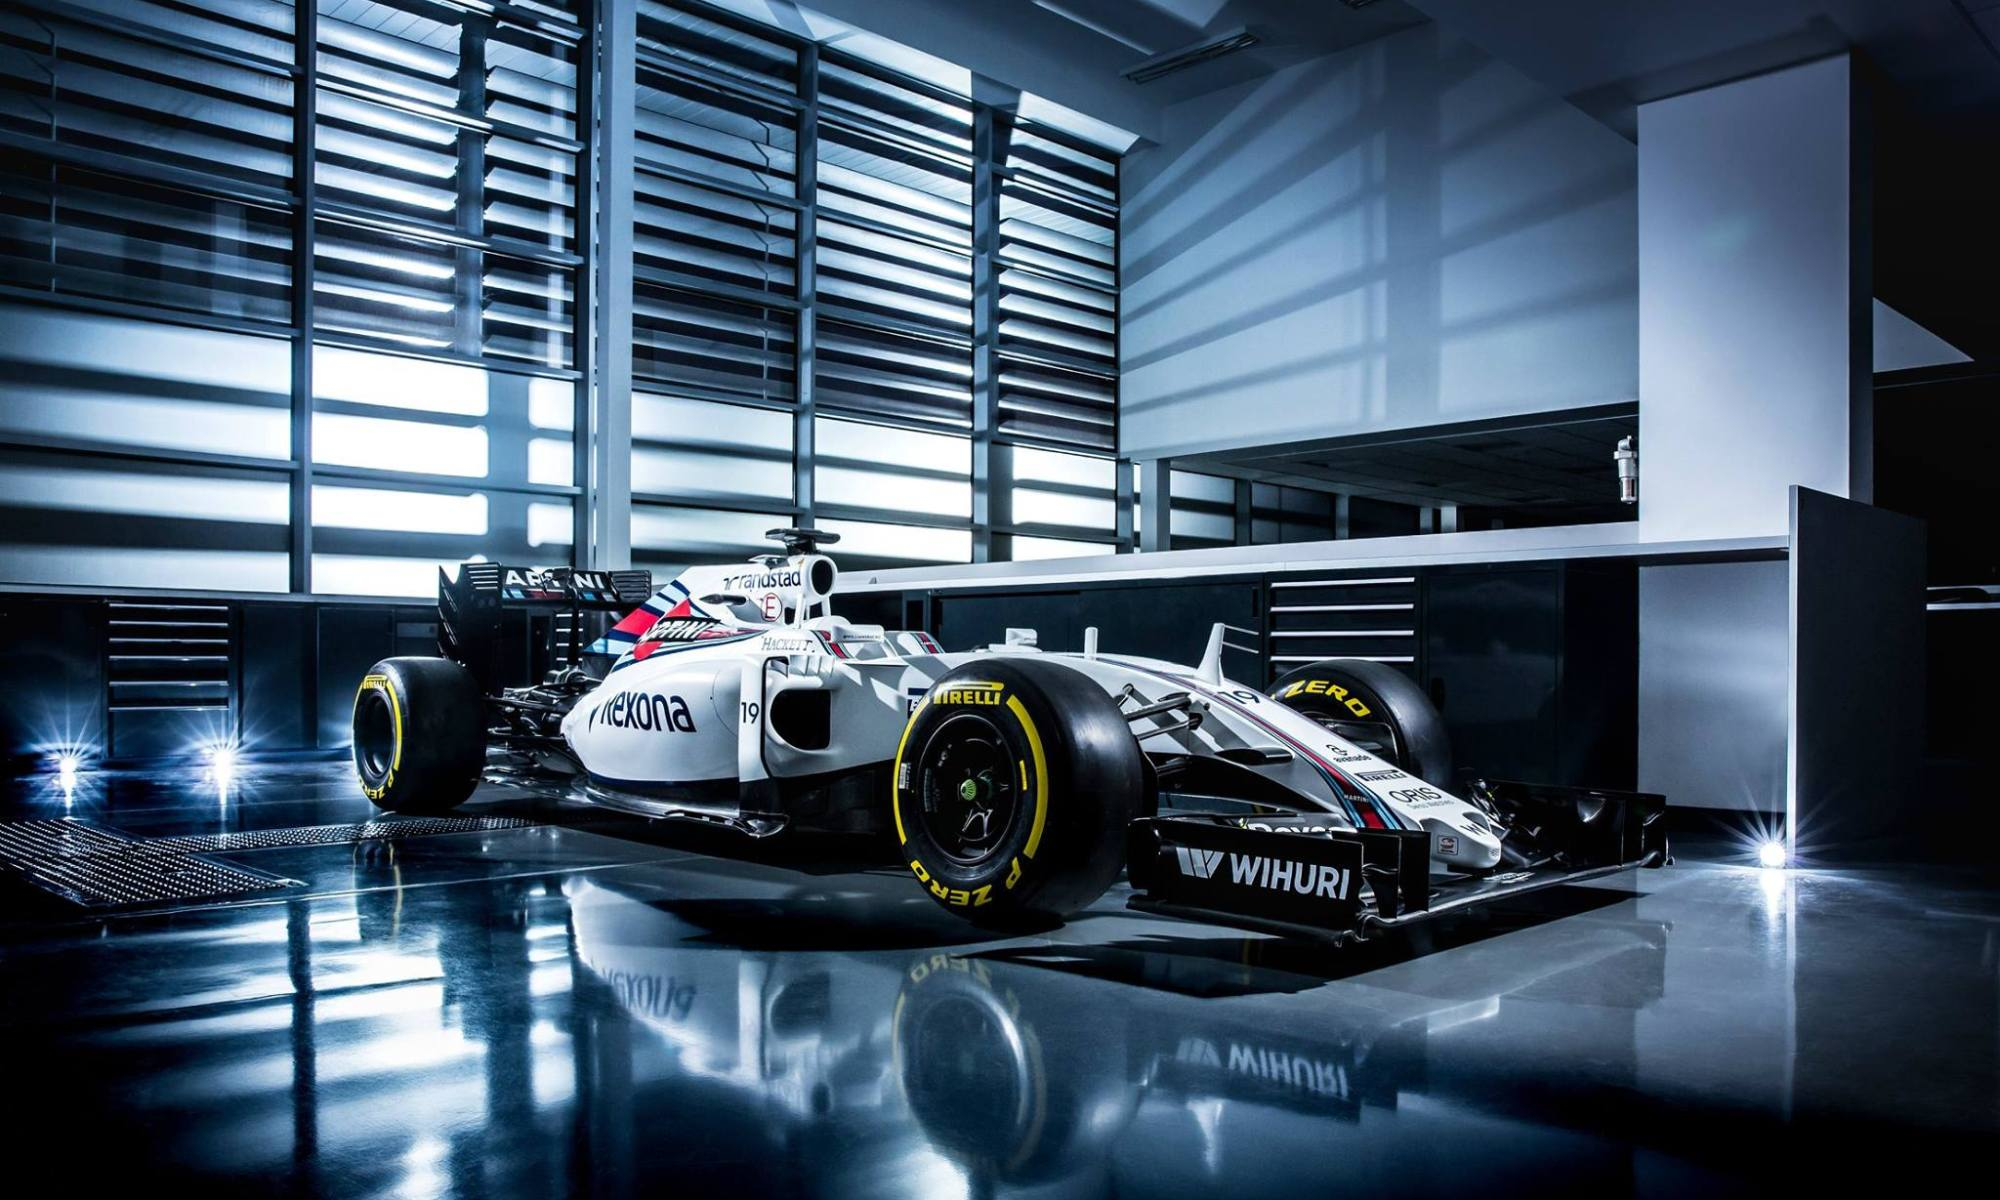 Williams Martini Racing FW32